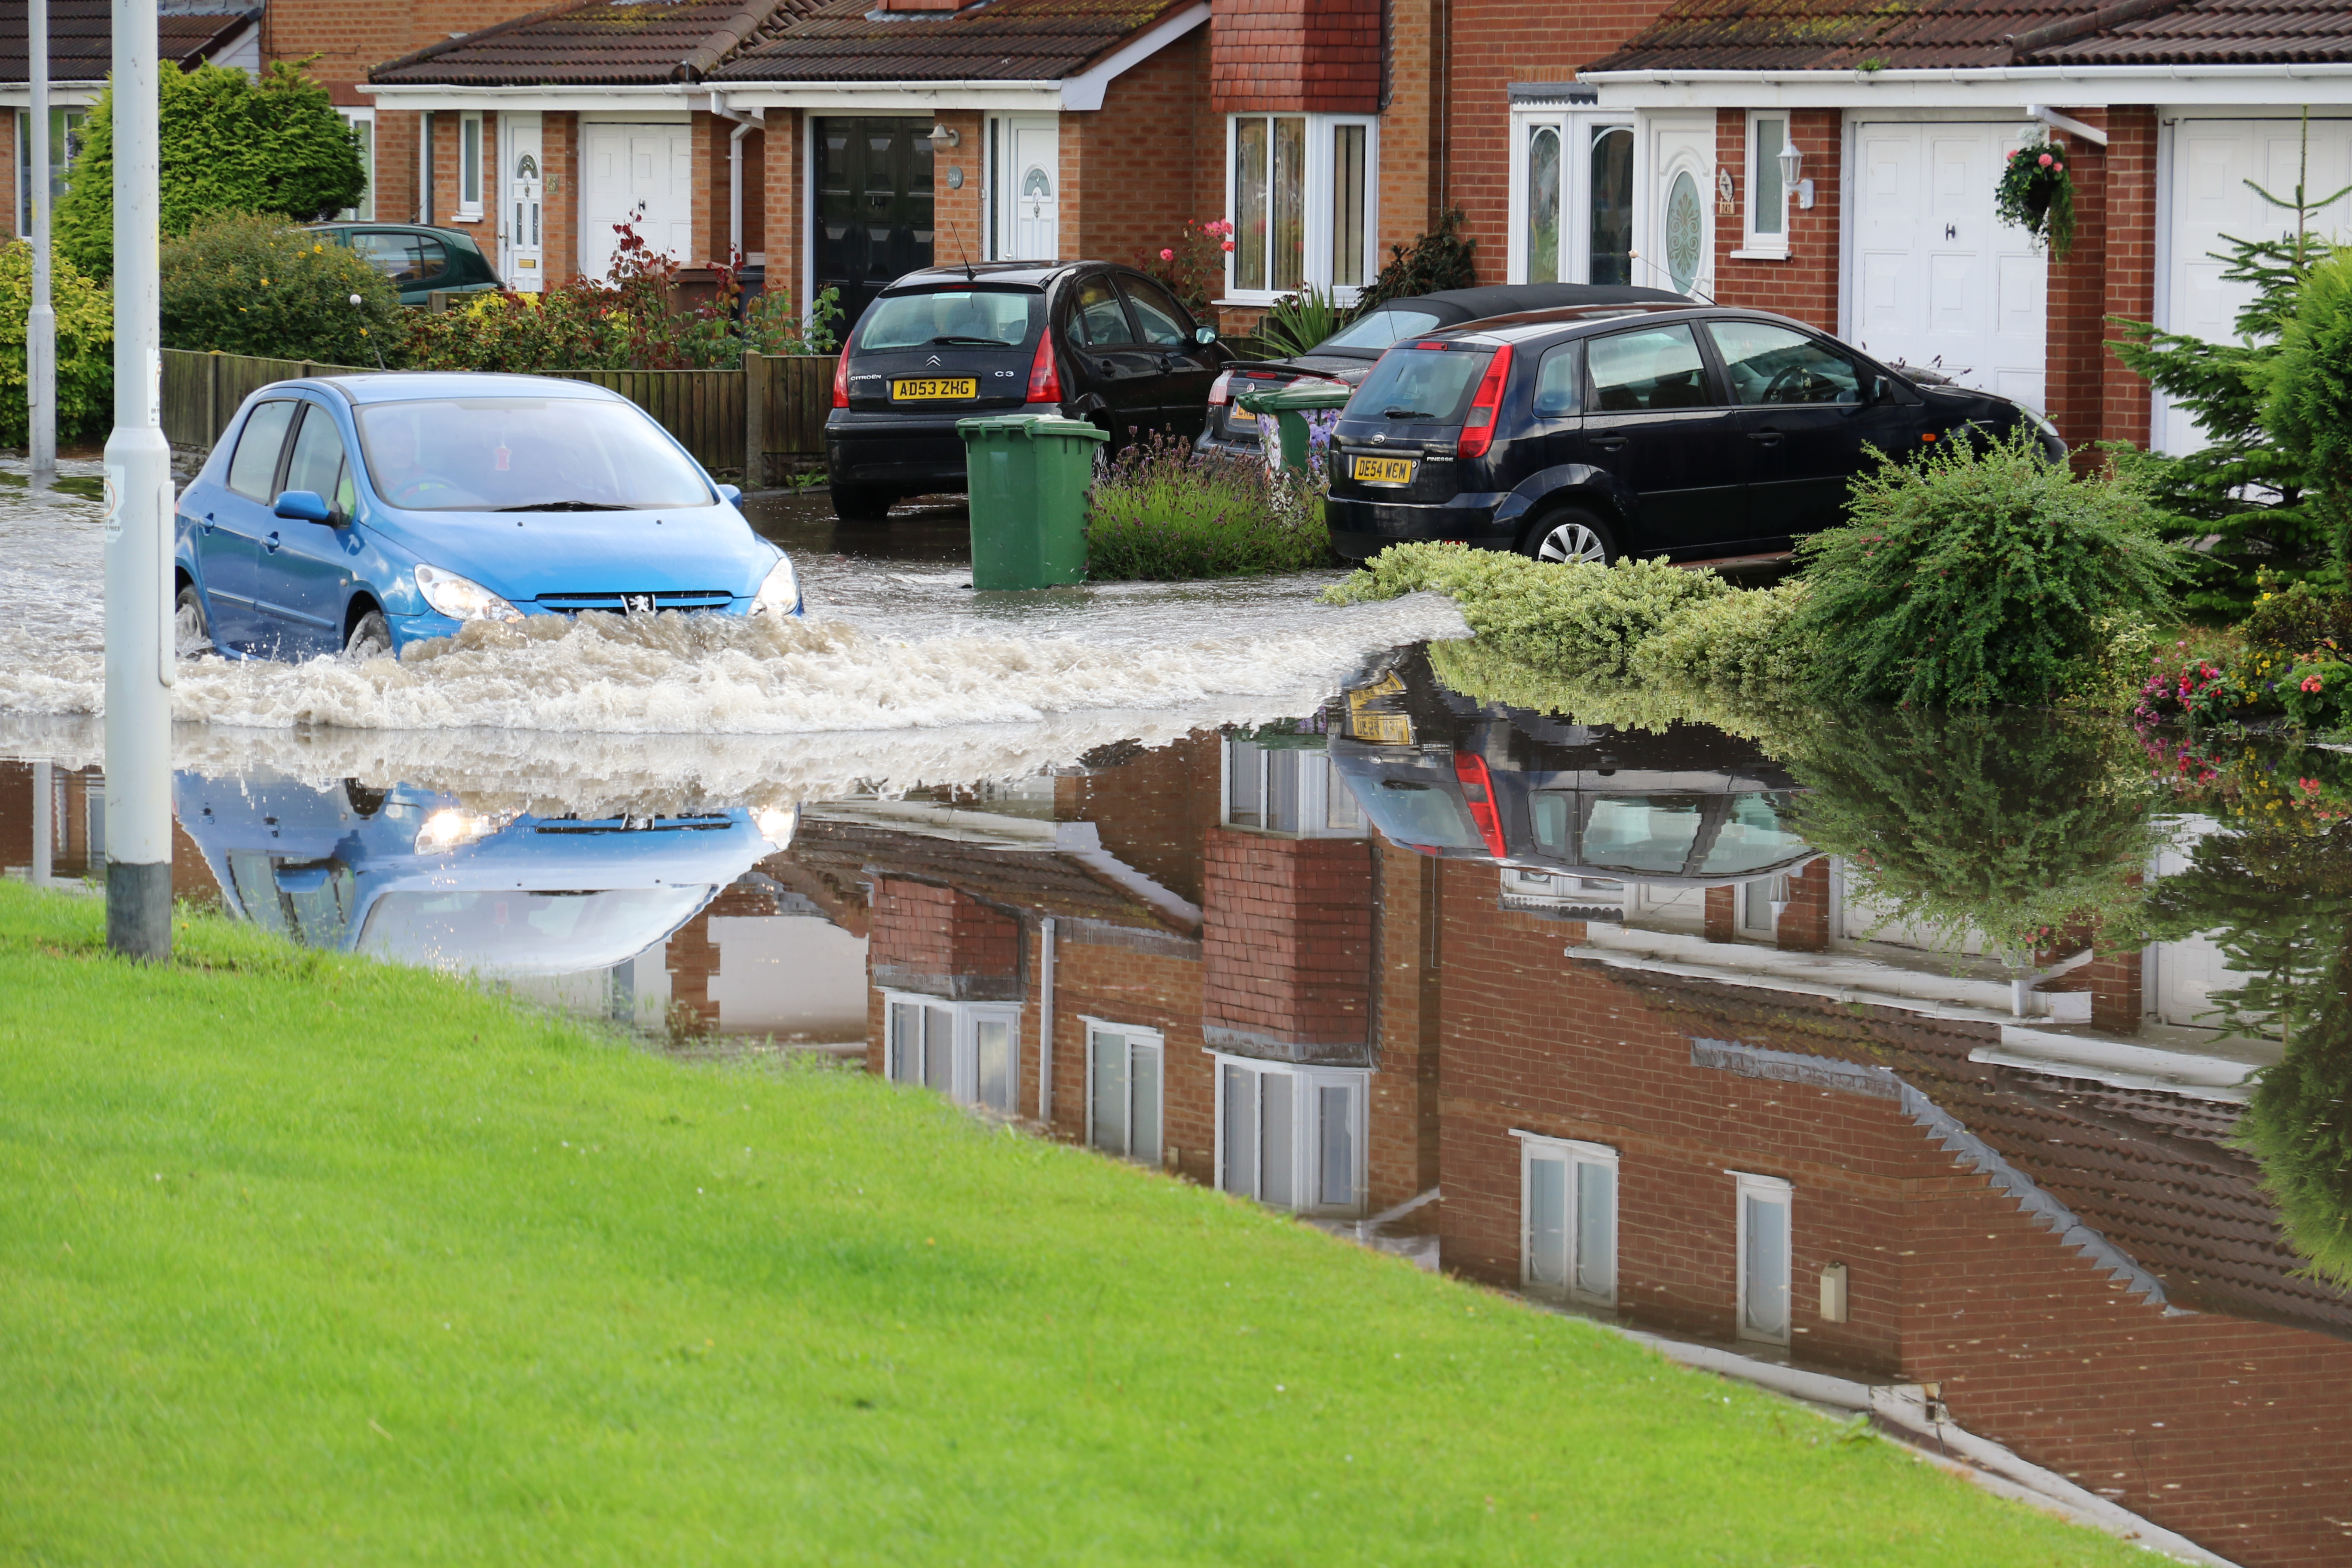 Moreton Floods - Millhouse Lane, even travelling at relatively slow speeds pushes a tidal wave into the gardens